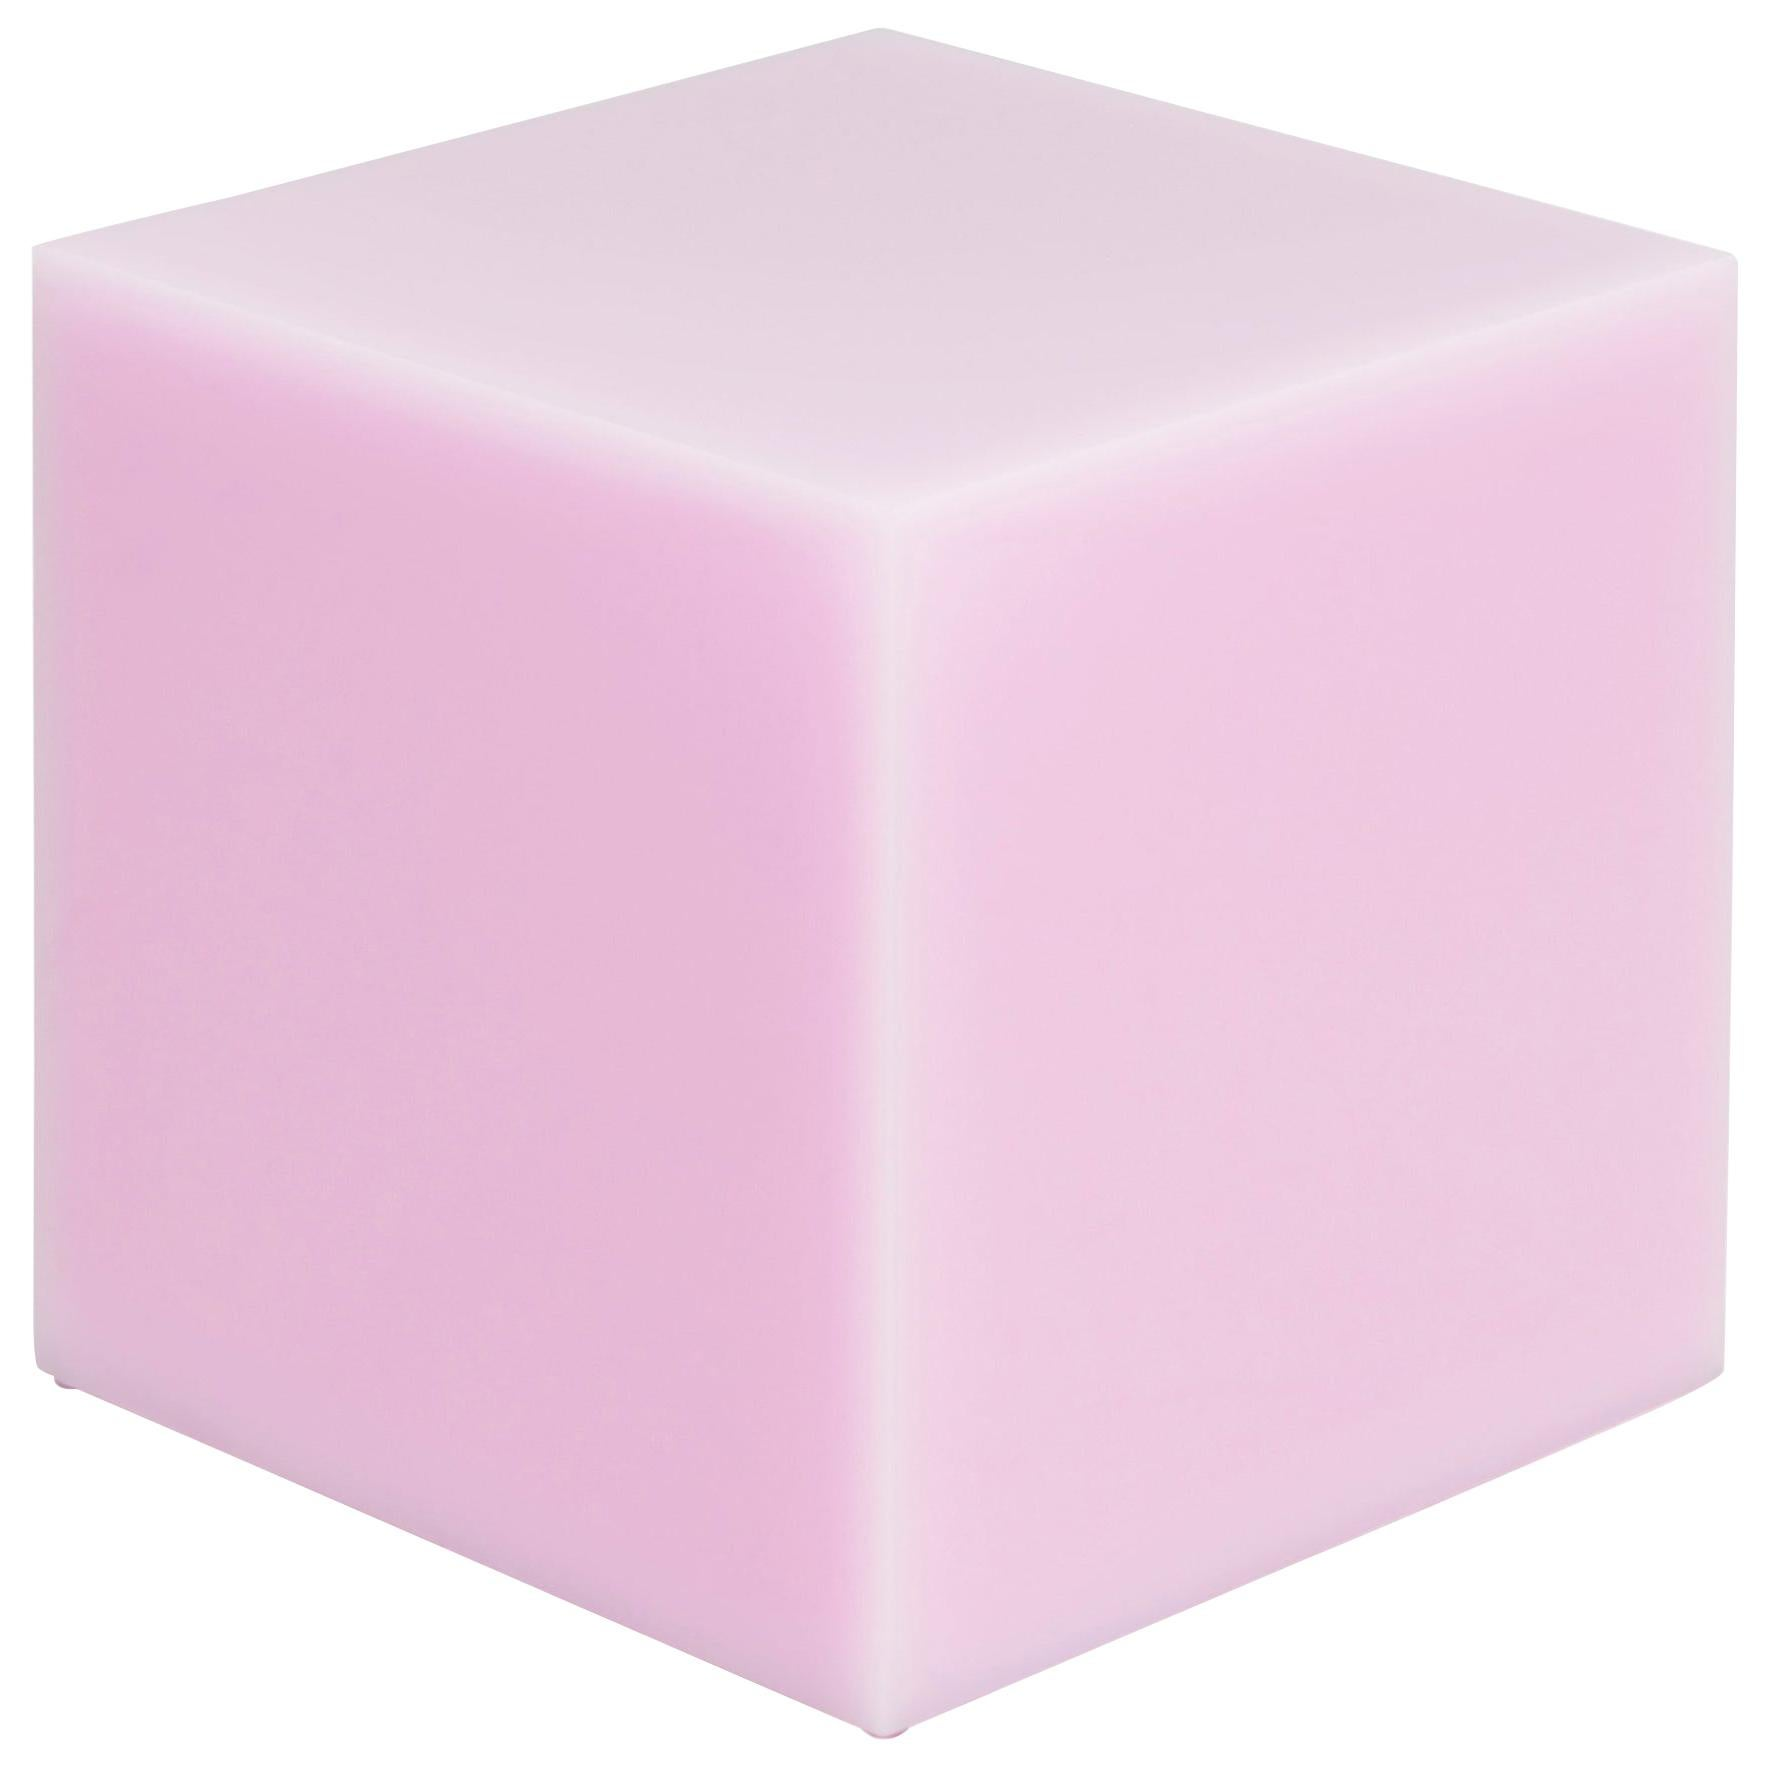 Contemporary Glossy Resin Side Table, Candy Cube in Bubble Gum Pink